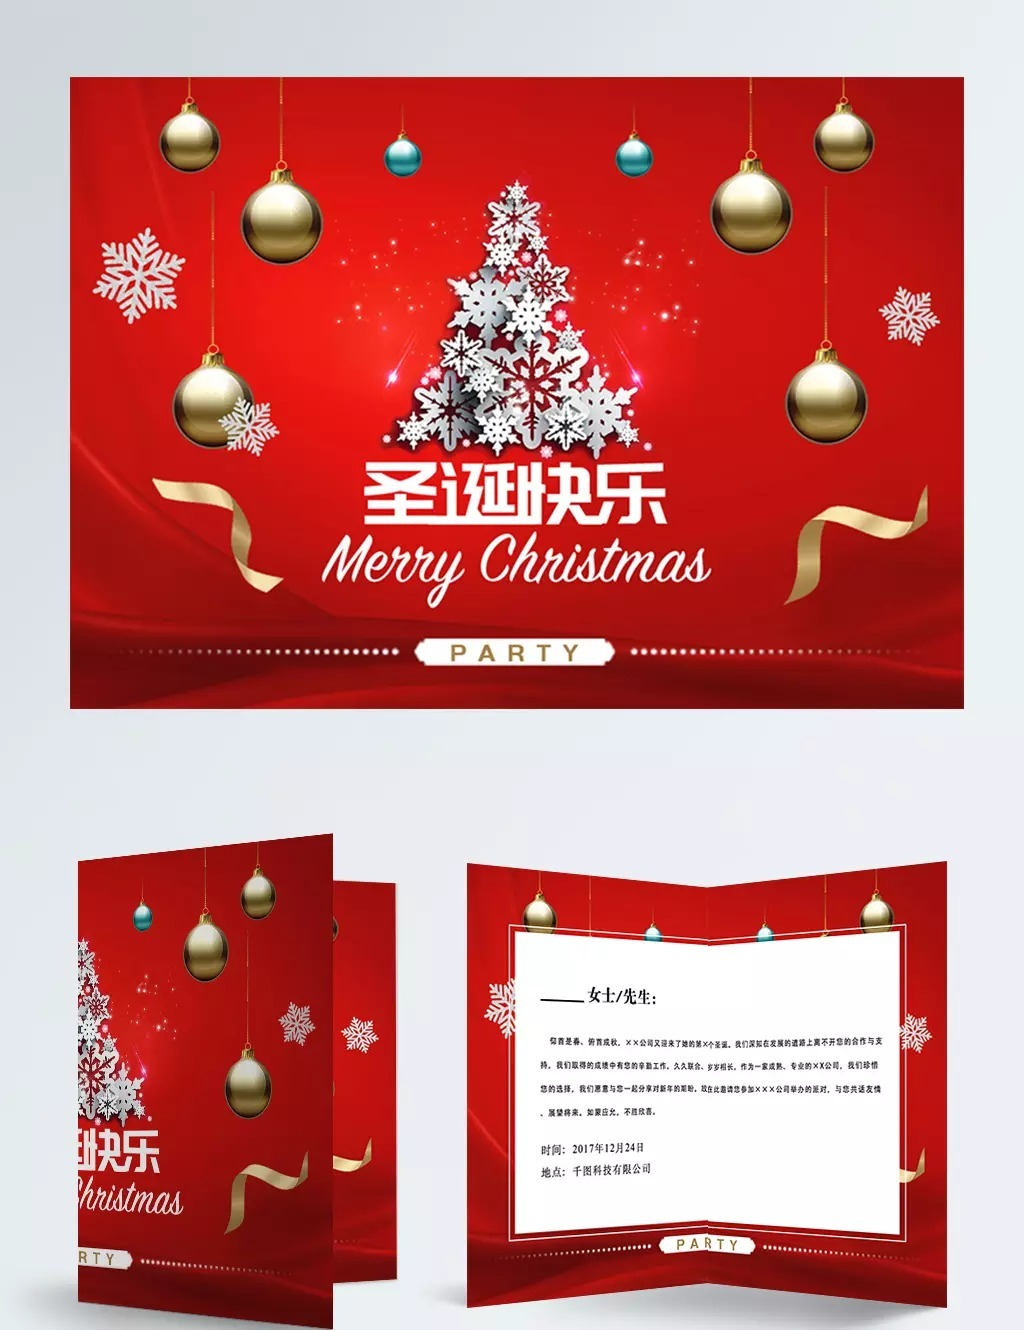 Christmas Invitation Templates.Delicate Red Christmas Invitation Template For Free Download